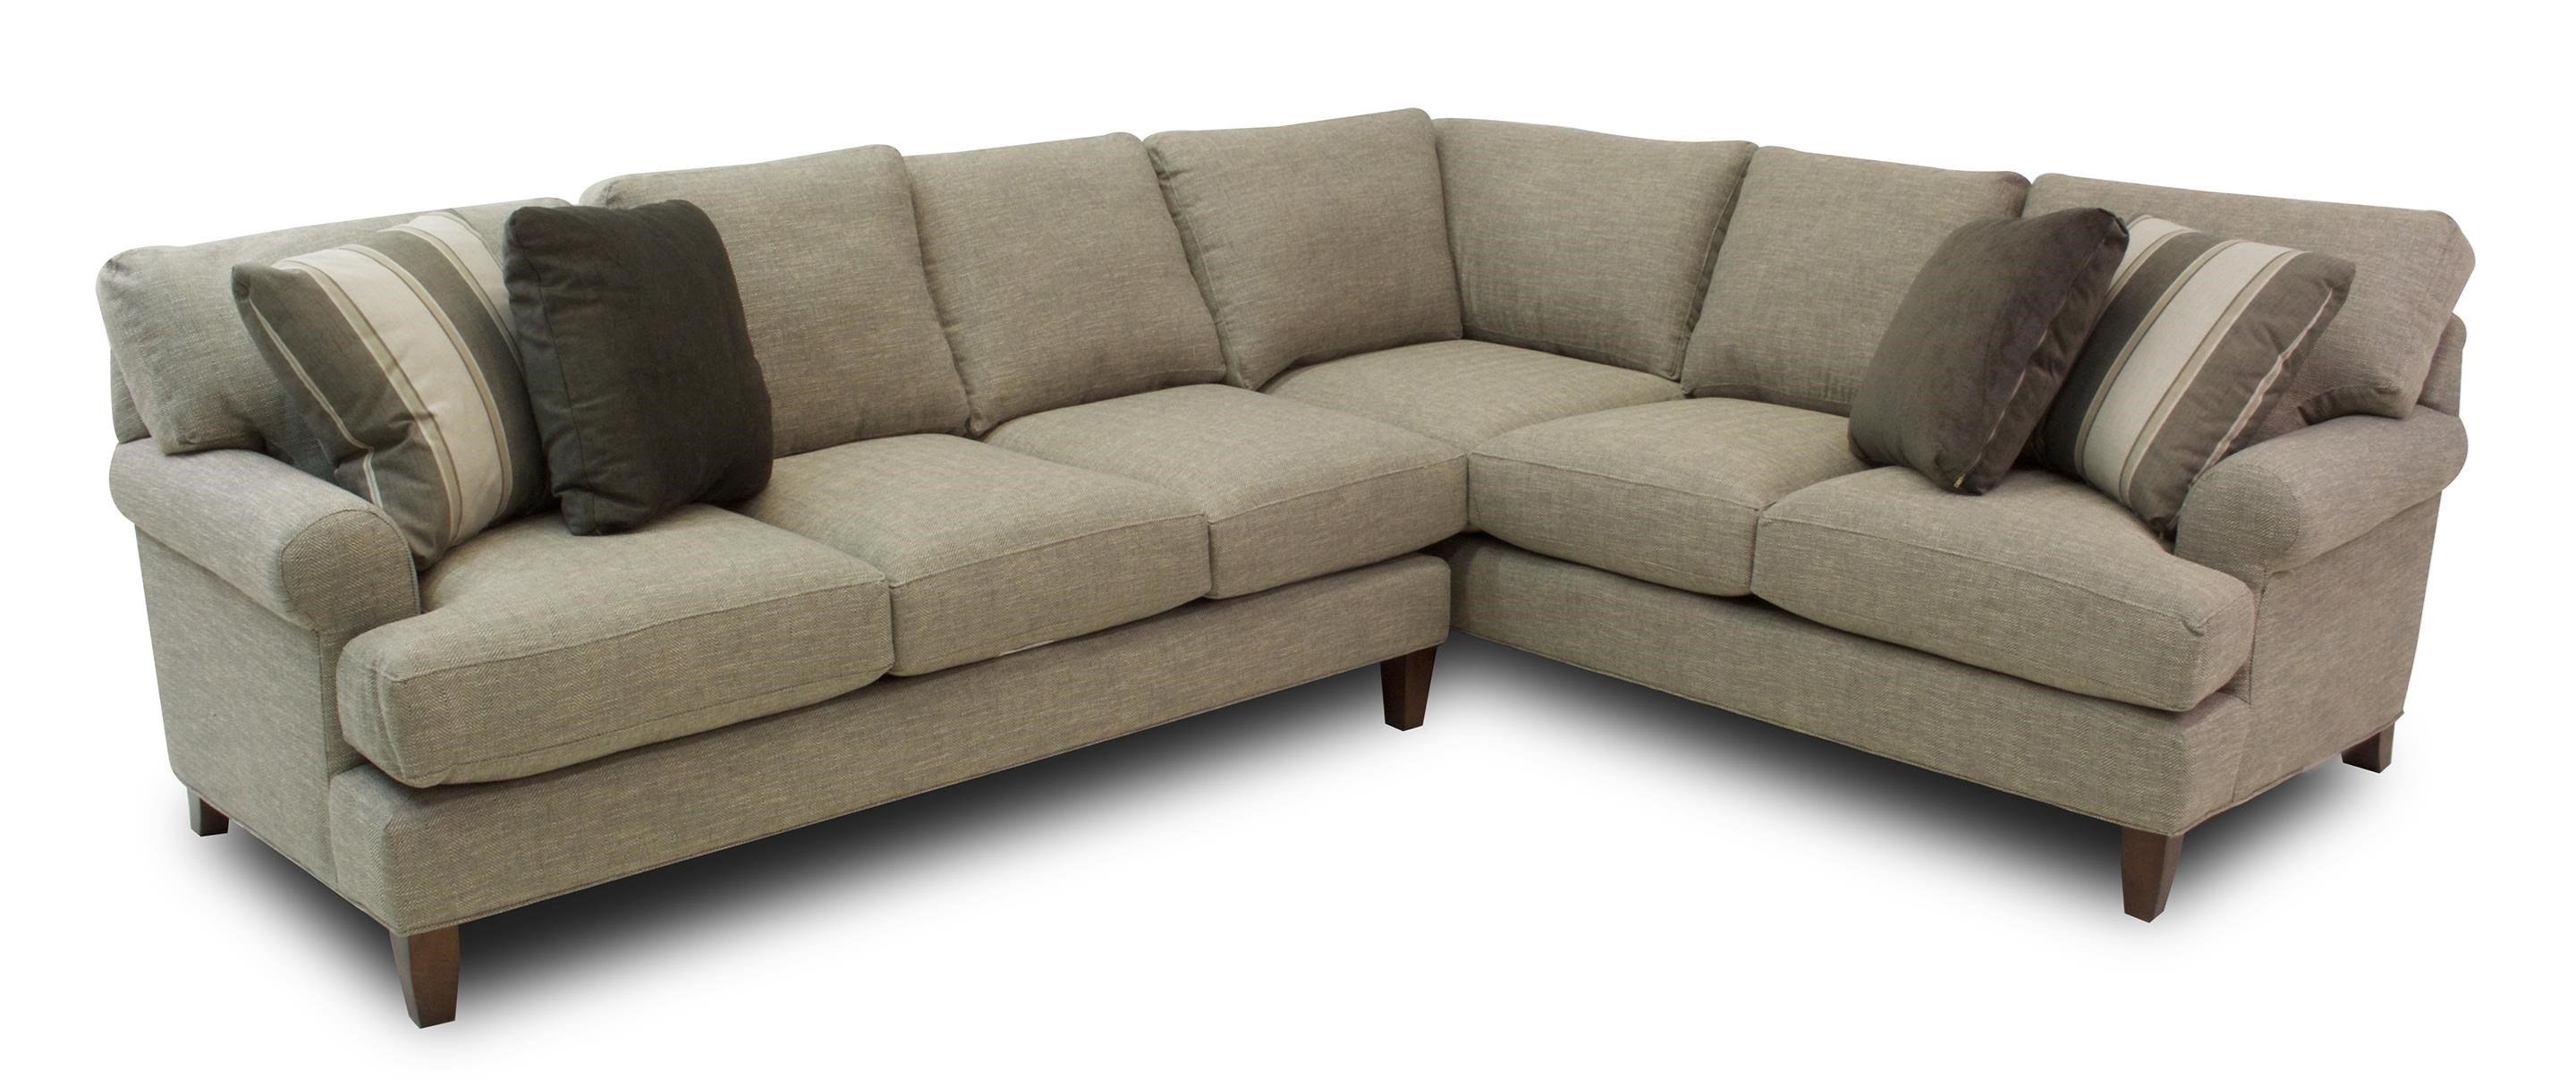 Hickory Craft Latte 2-Piece Sectional - Item Number: 1776-2PC